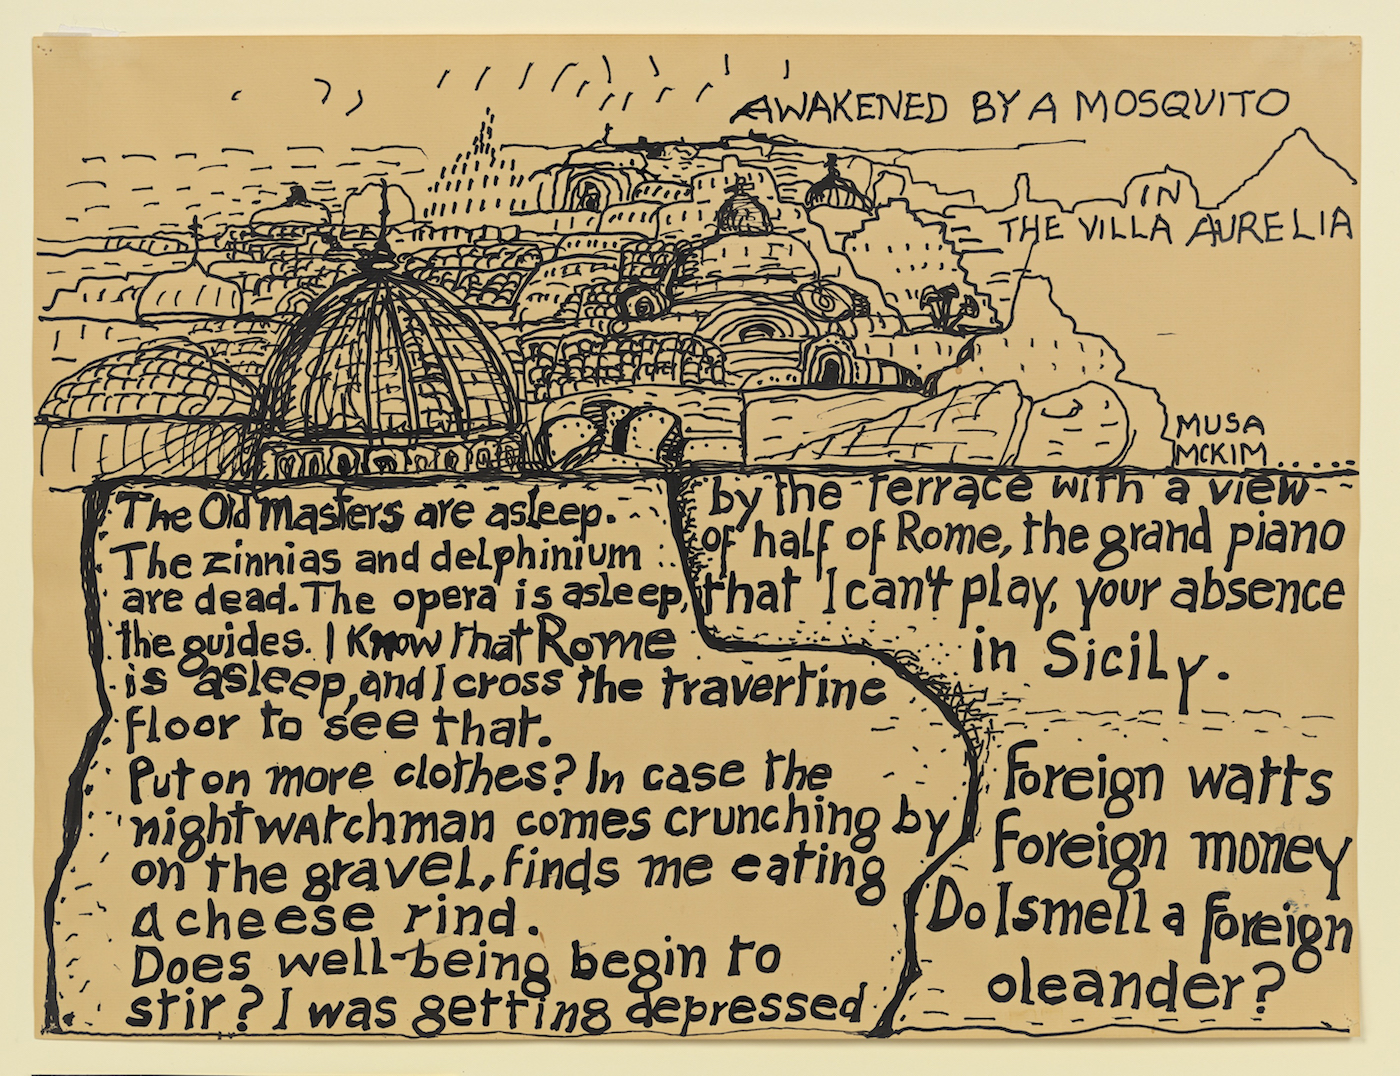 """Philip Guston, """"Awakened by a Mosquito"""", circa 1972-1975, collaborative poem-picture with wife Musa McKim, ink on paper. Photo by Genevieve Hanson."""